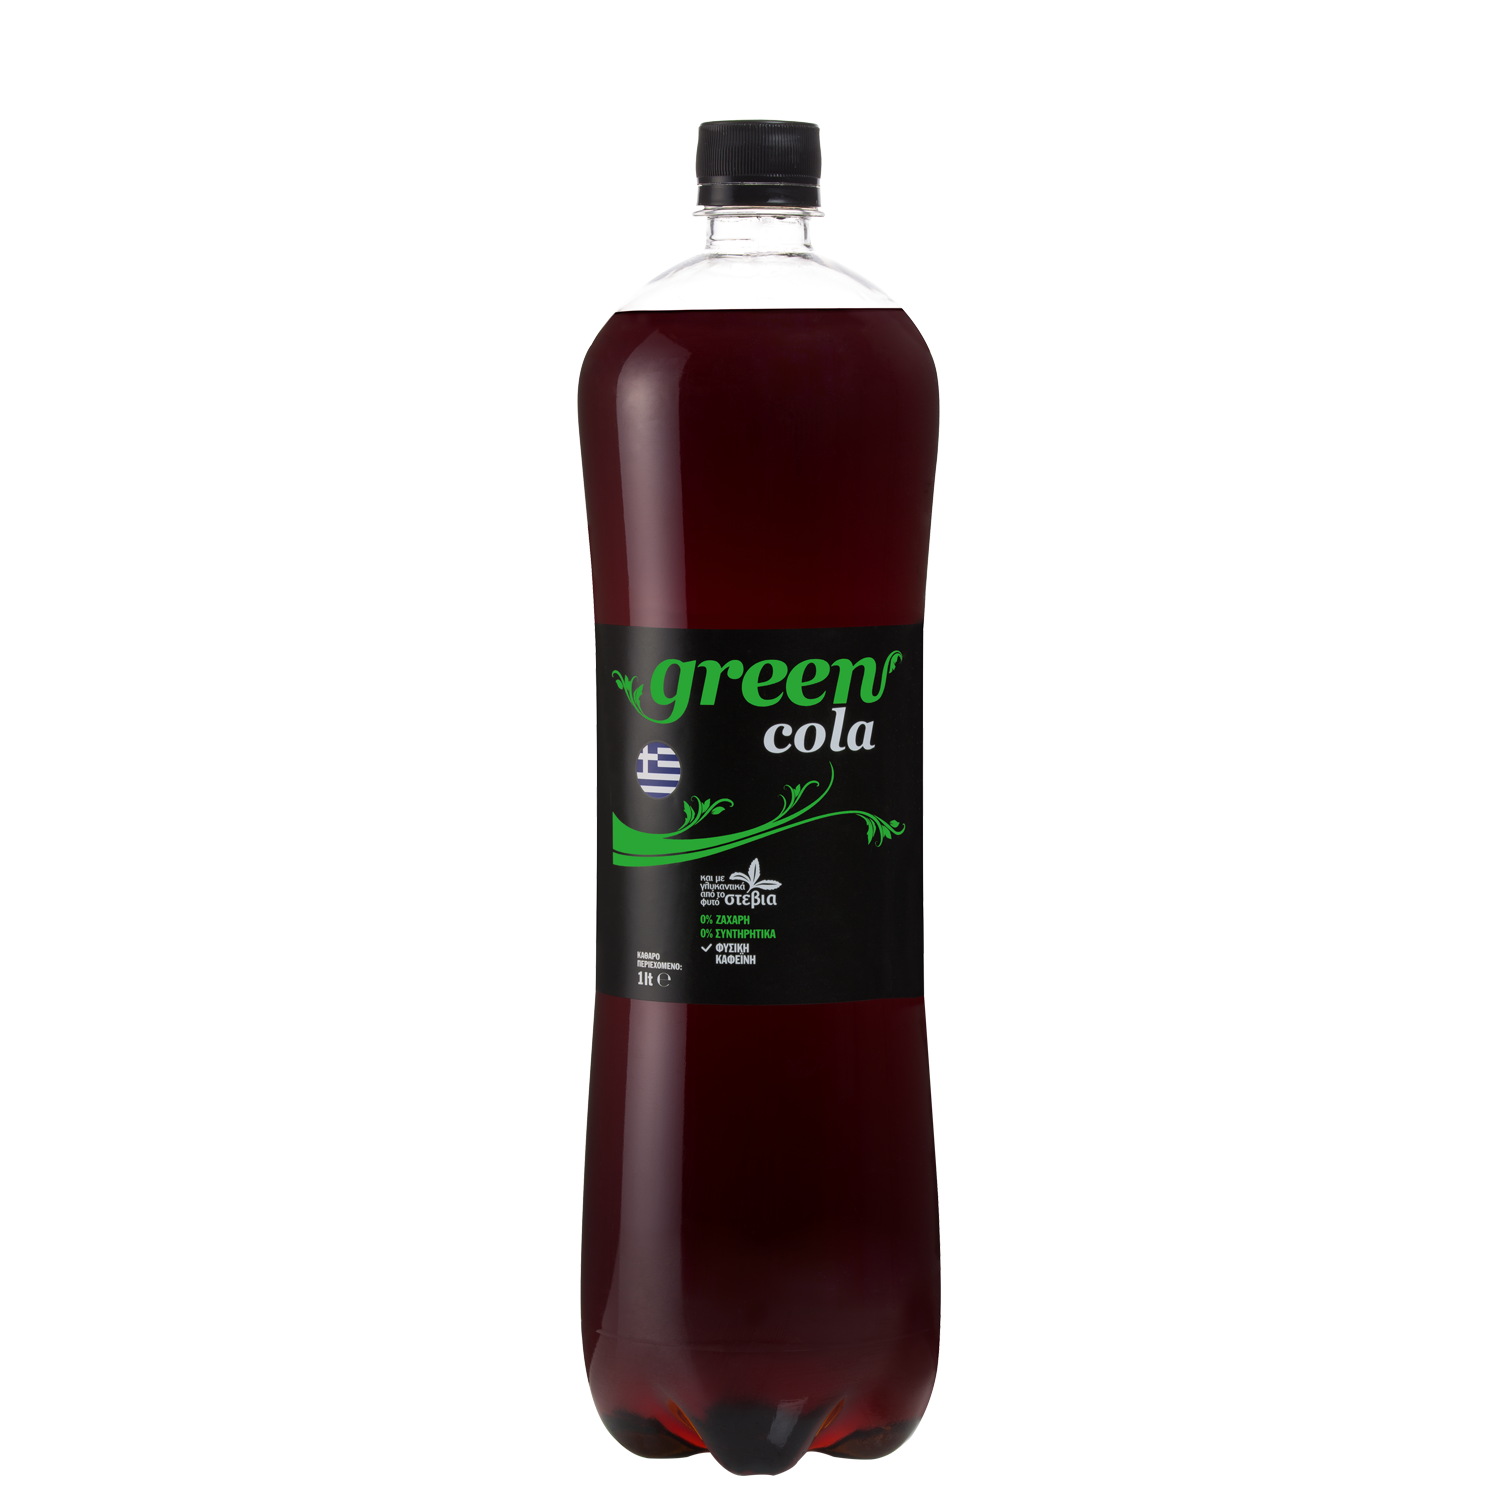 Green Cola - PET 1lt - Bottle